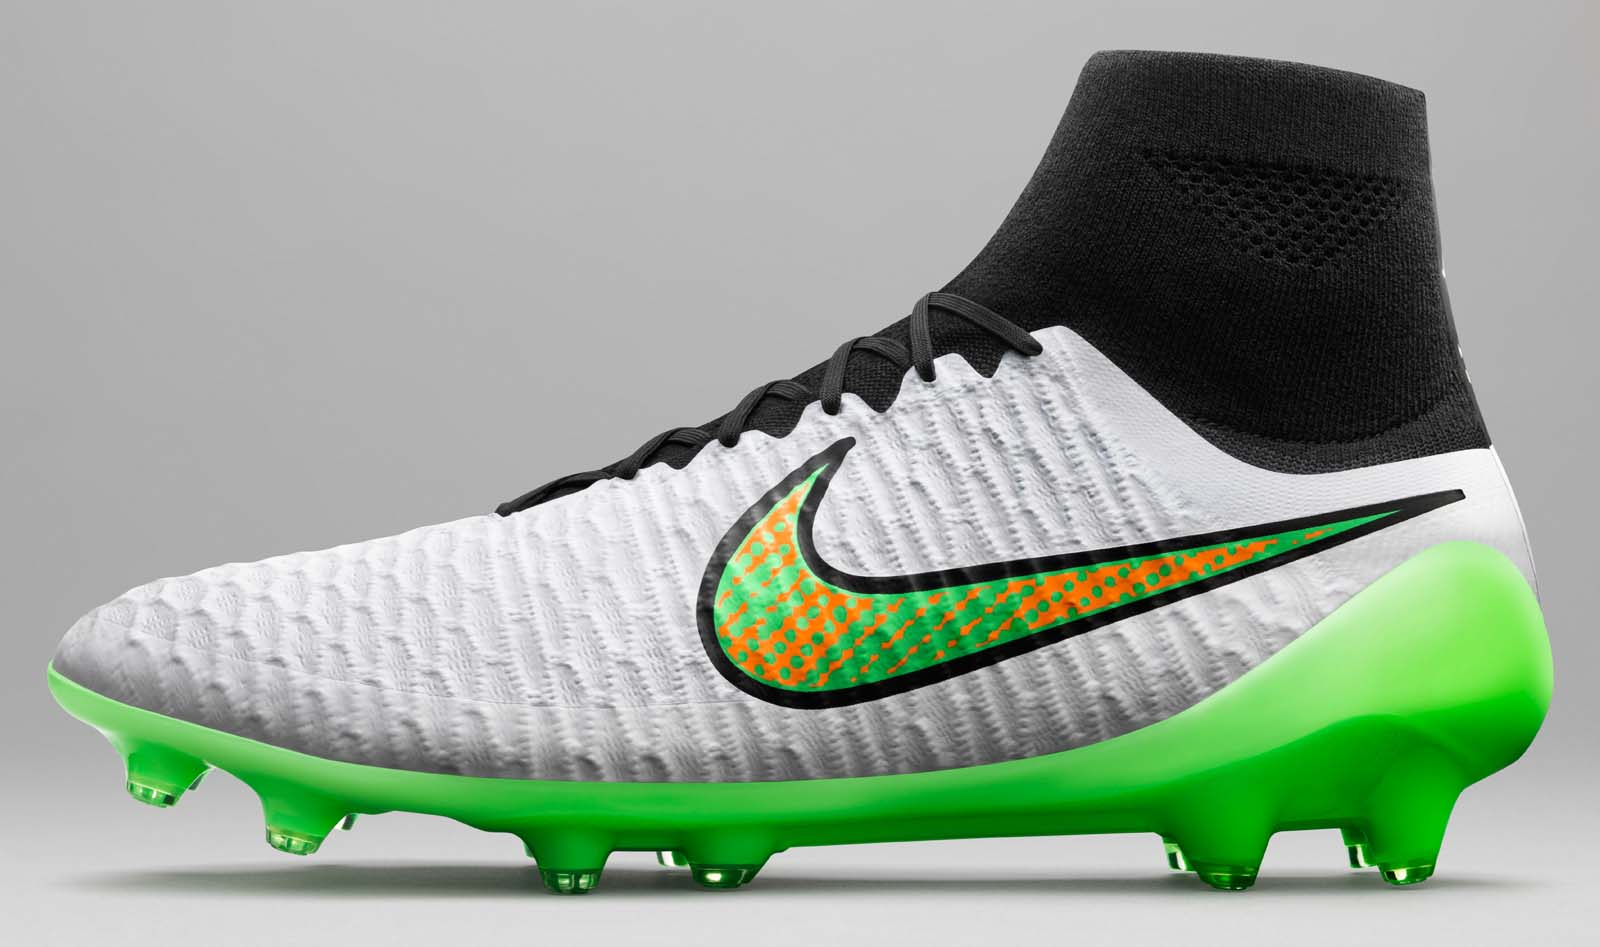 Cheap Nike Soccer Cleats Nike Soccer Cleats 2018 buy